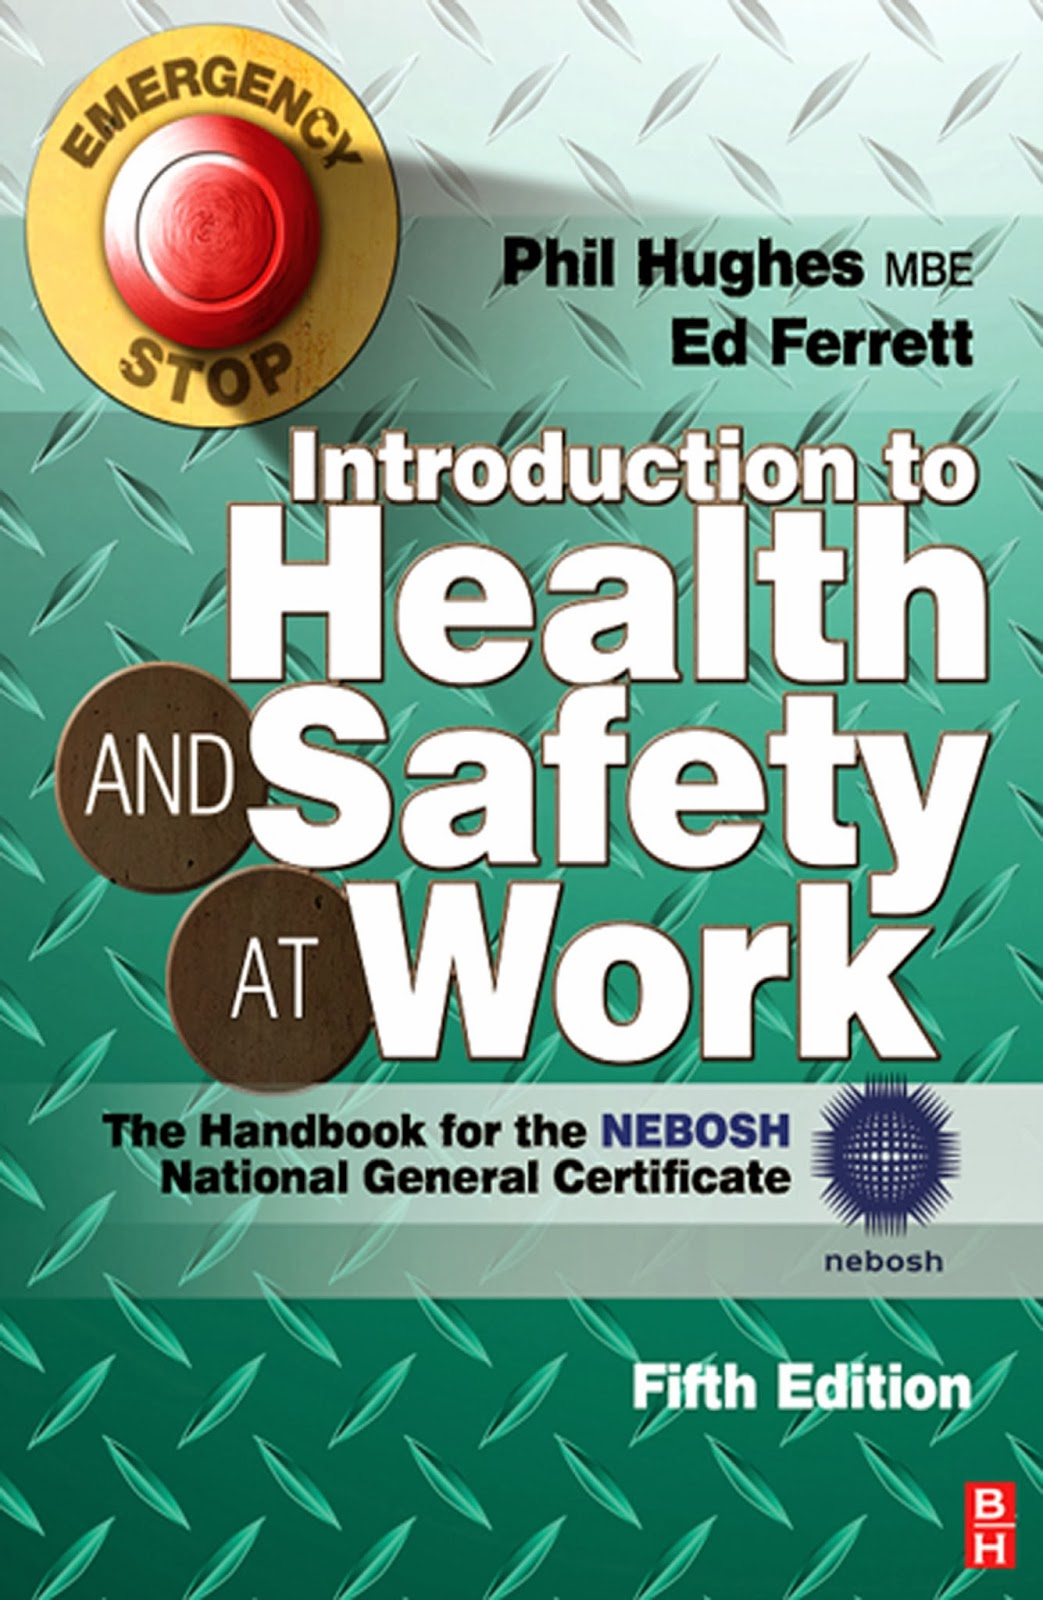 NEBOSH Handbook: Introduction to Health & Safety at Work by Phil Hughes